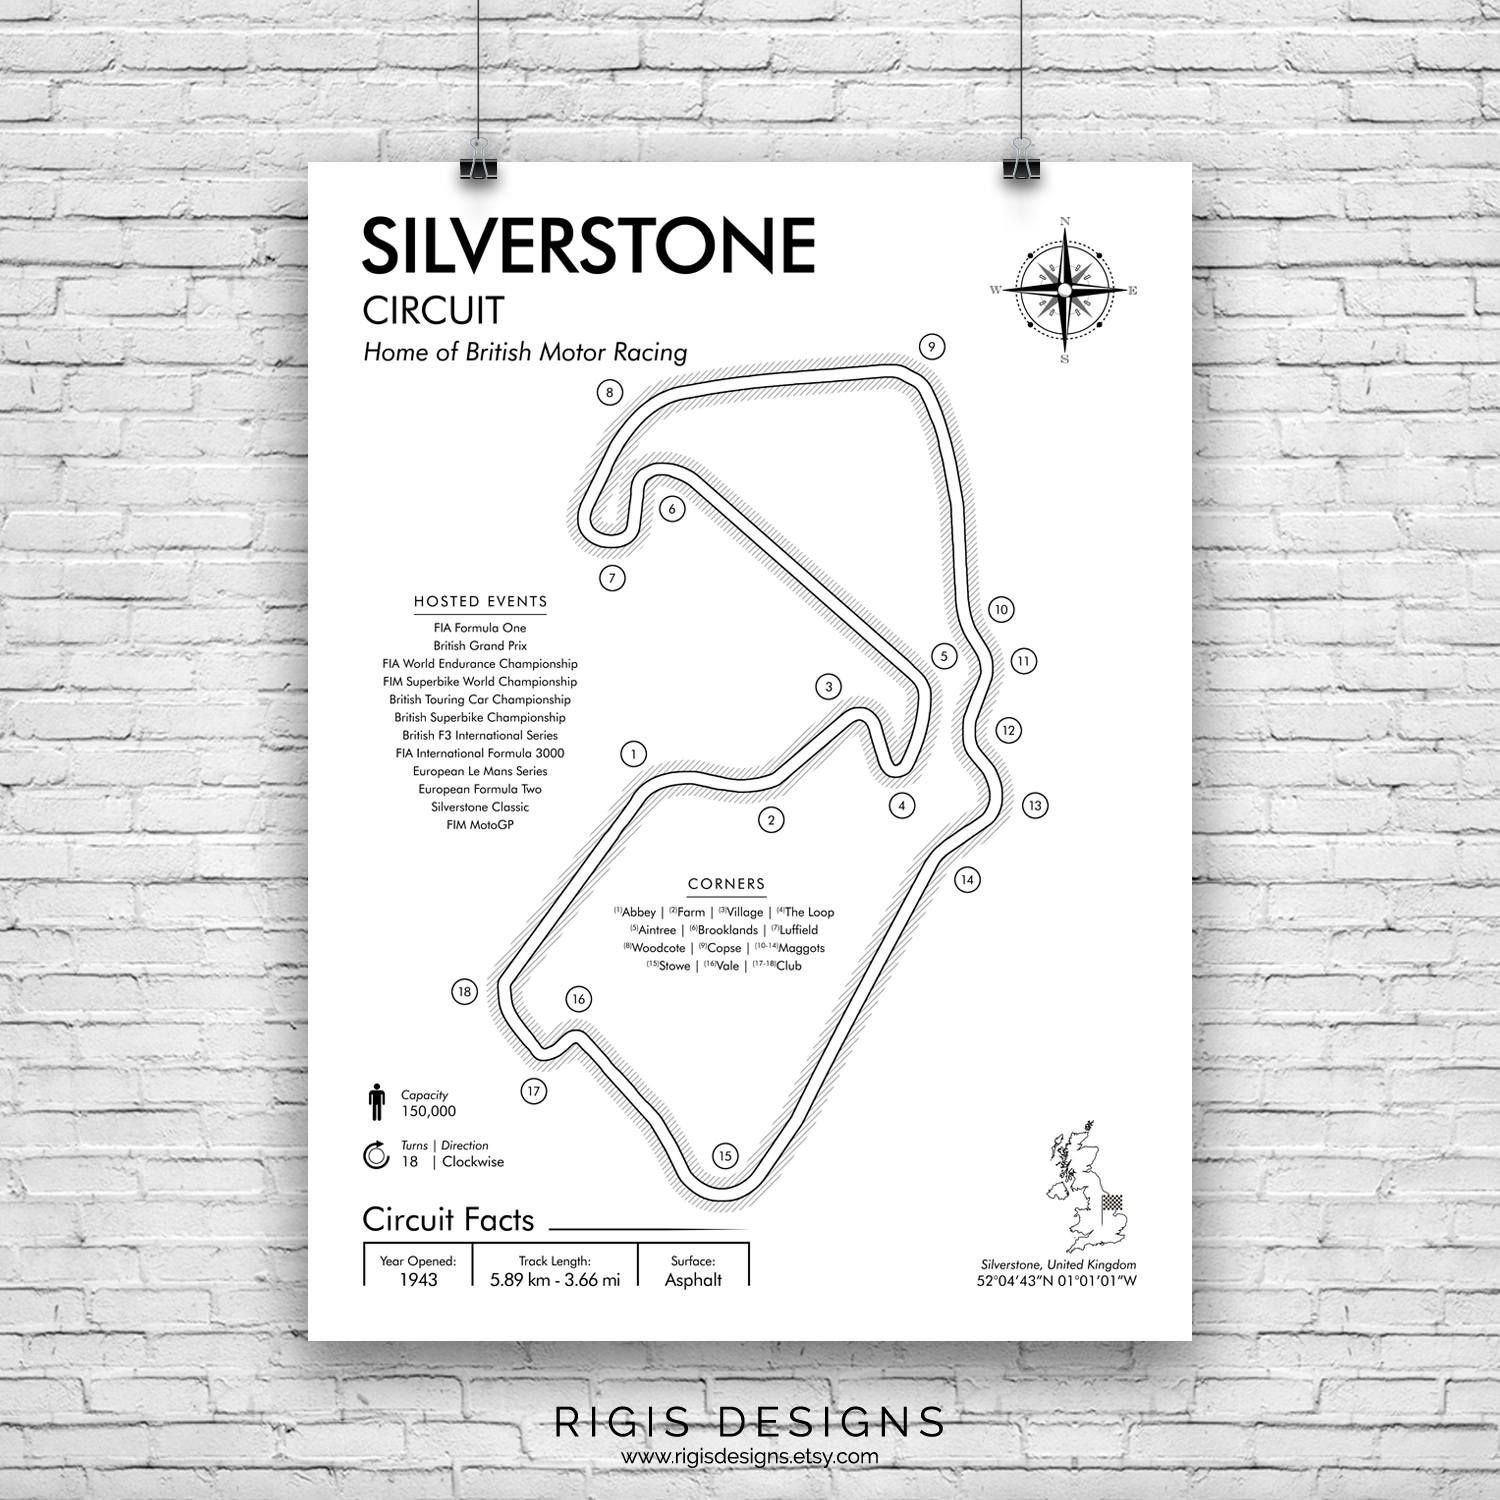 F1 Car Diagram Silverstone Circuit F1 Race Track F1 Circuits formula E Of F1 Car Diagram